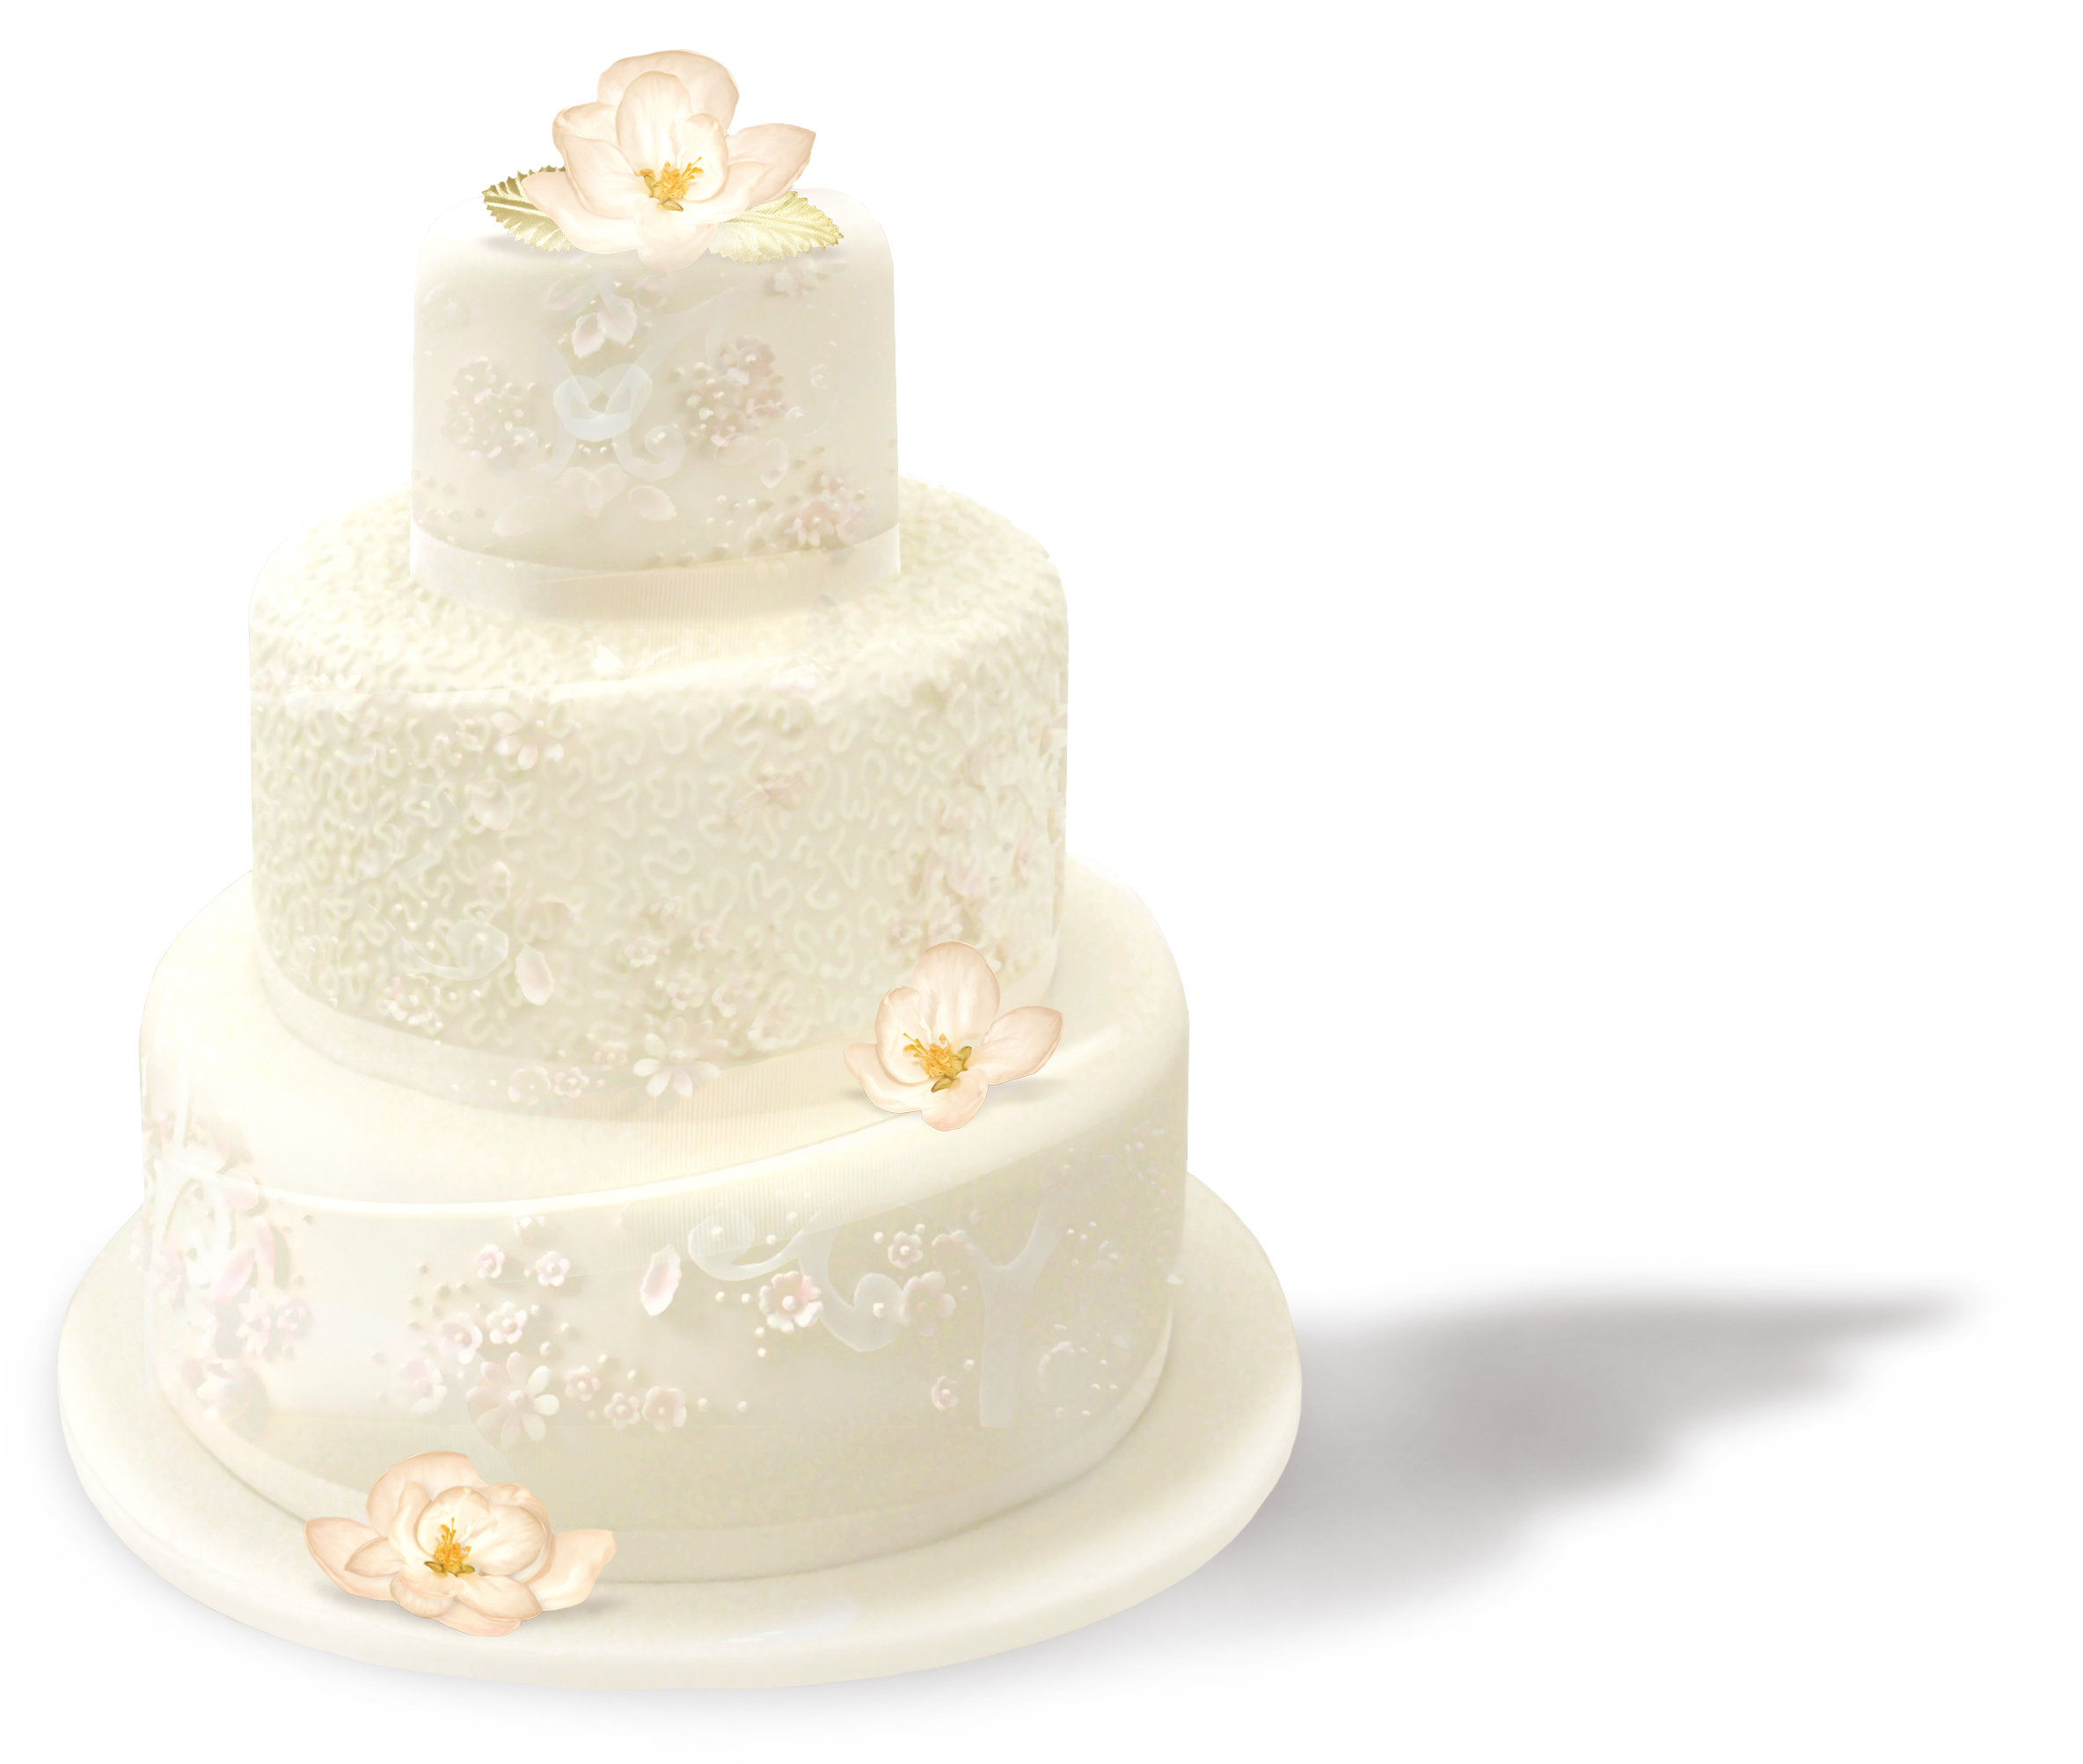 Wedding cake png. Picture gallery yopriceville high